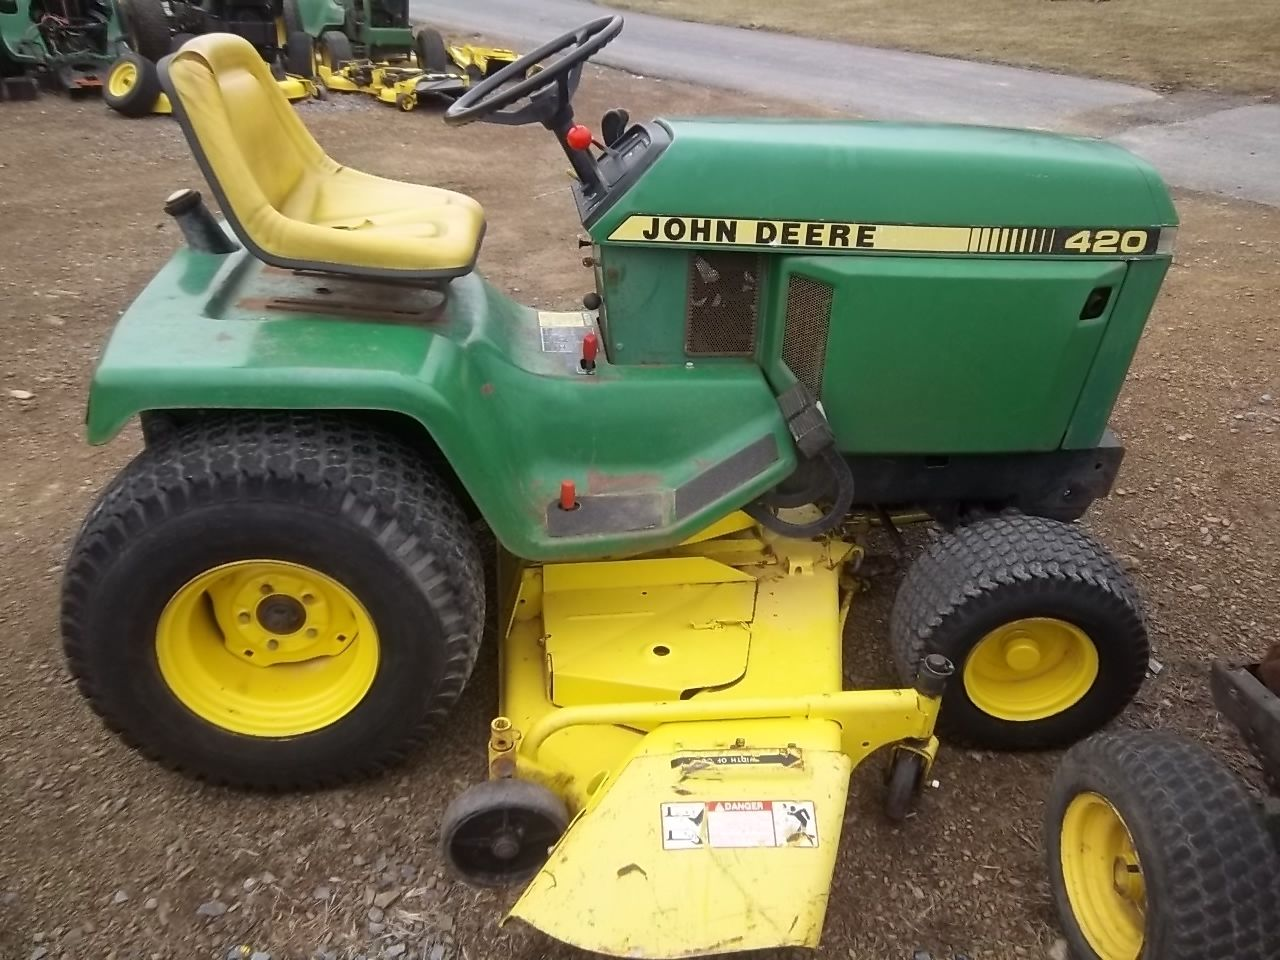 0ae4130bc214c93b94f7c54aab0e726d john deere 420 garden tractor john deere 420 lawn & garden john deere 420 garden tractor wiring diagram at crackthecode.co